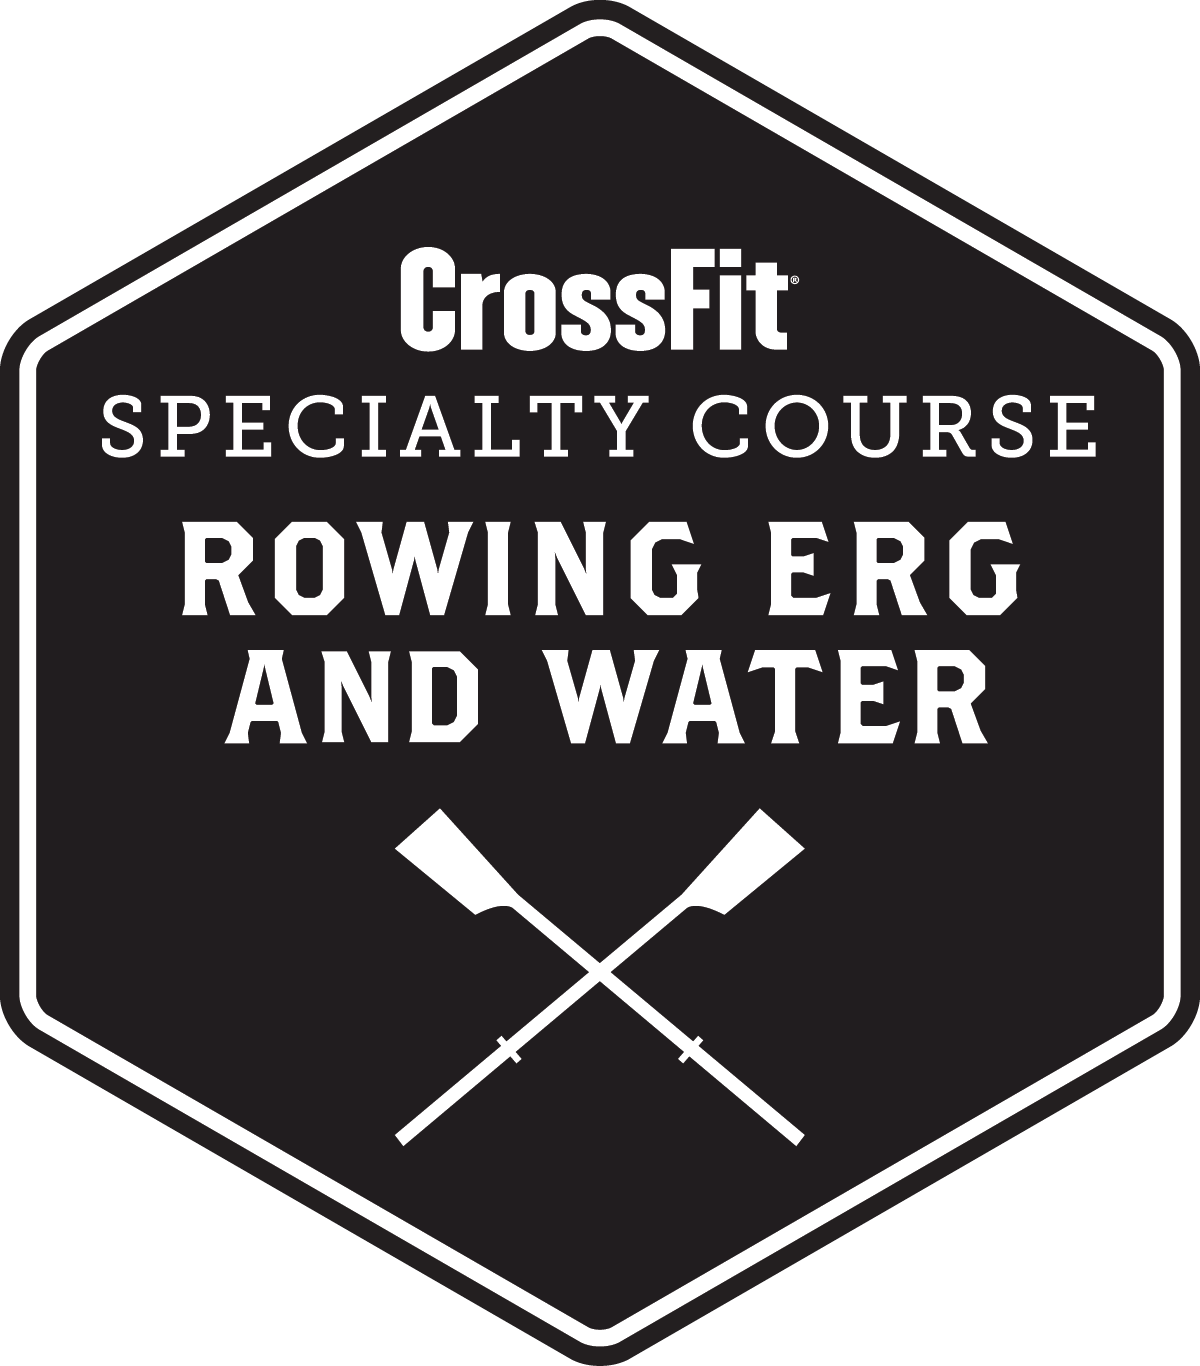 Crossfit Forging Elite Fitness Tuesday 181113 Parallel Circuit Definition For Kids Series Circuits